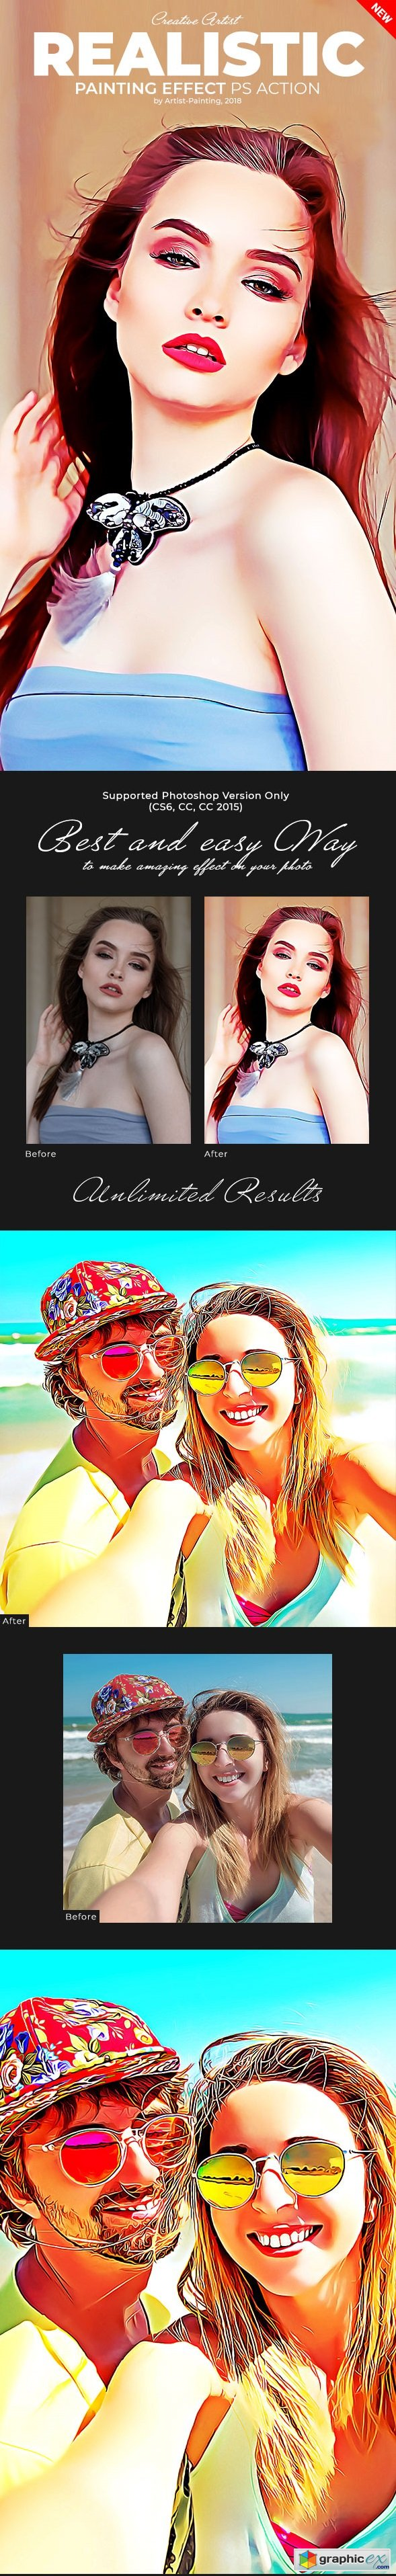 Realistic Painting Effect Photoshop Action 21458673